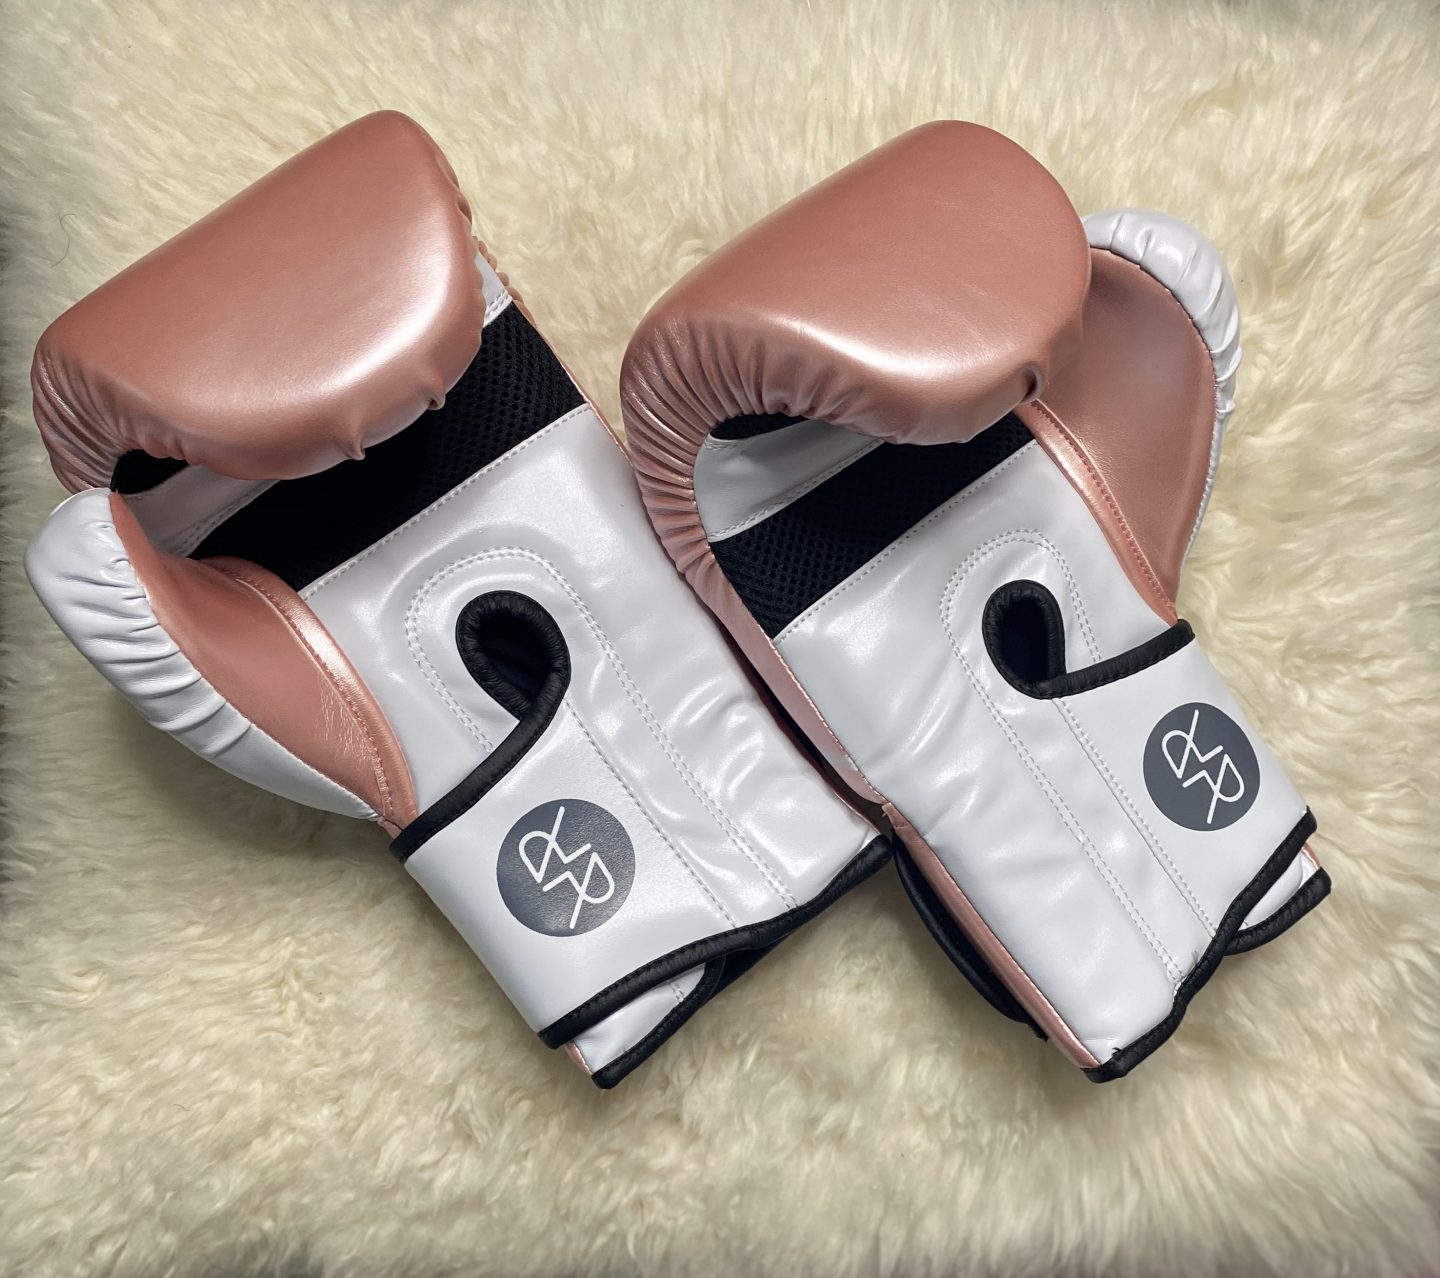 Ruckus Boxing Gloves